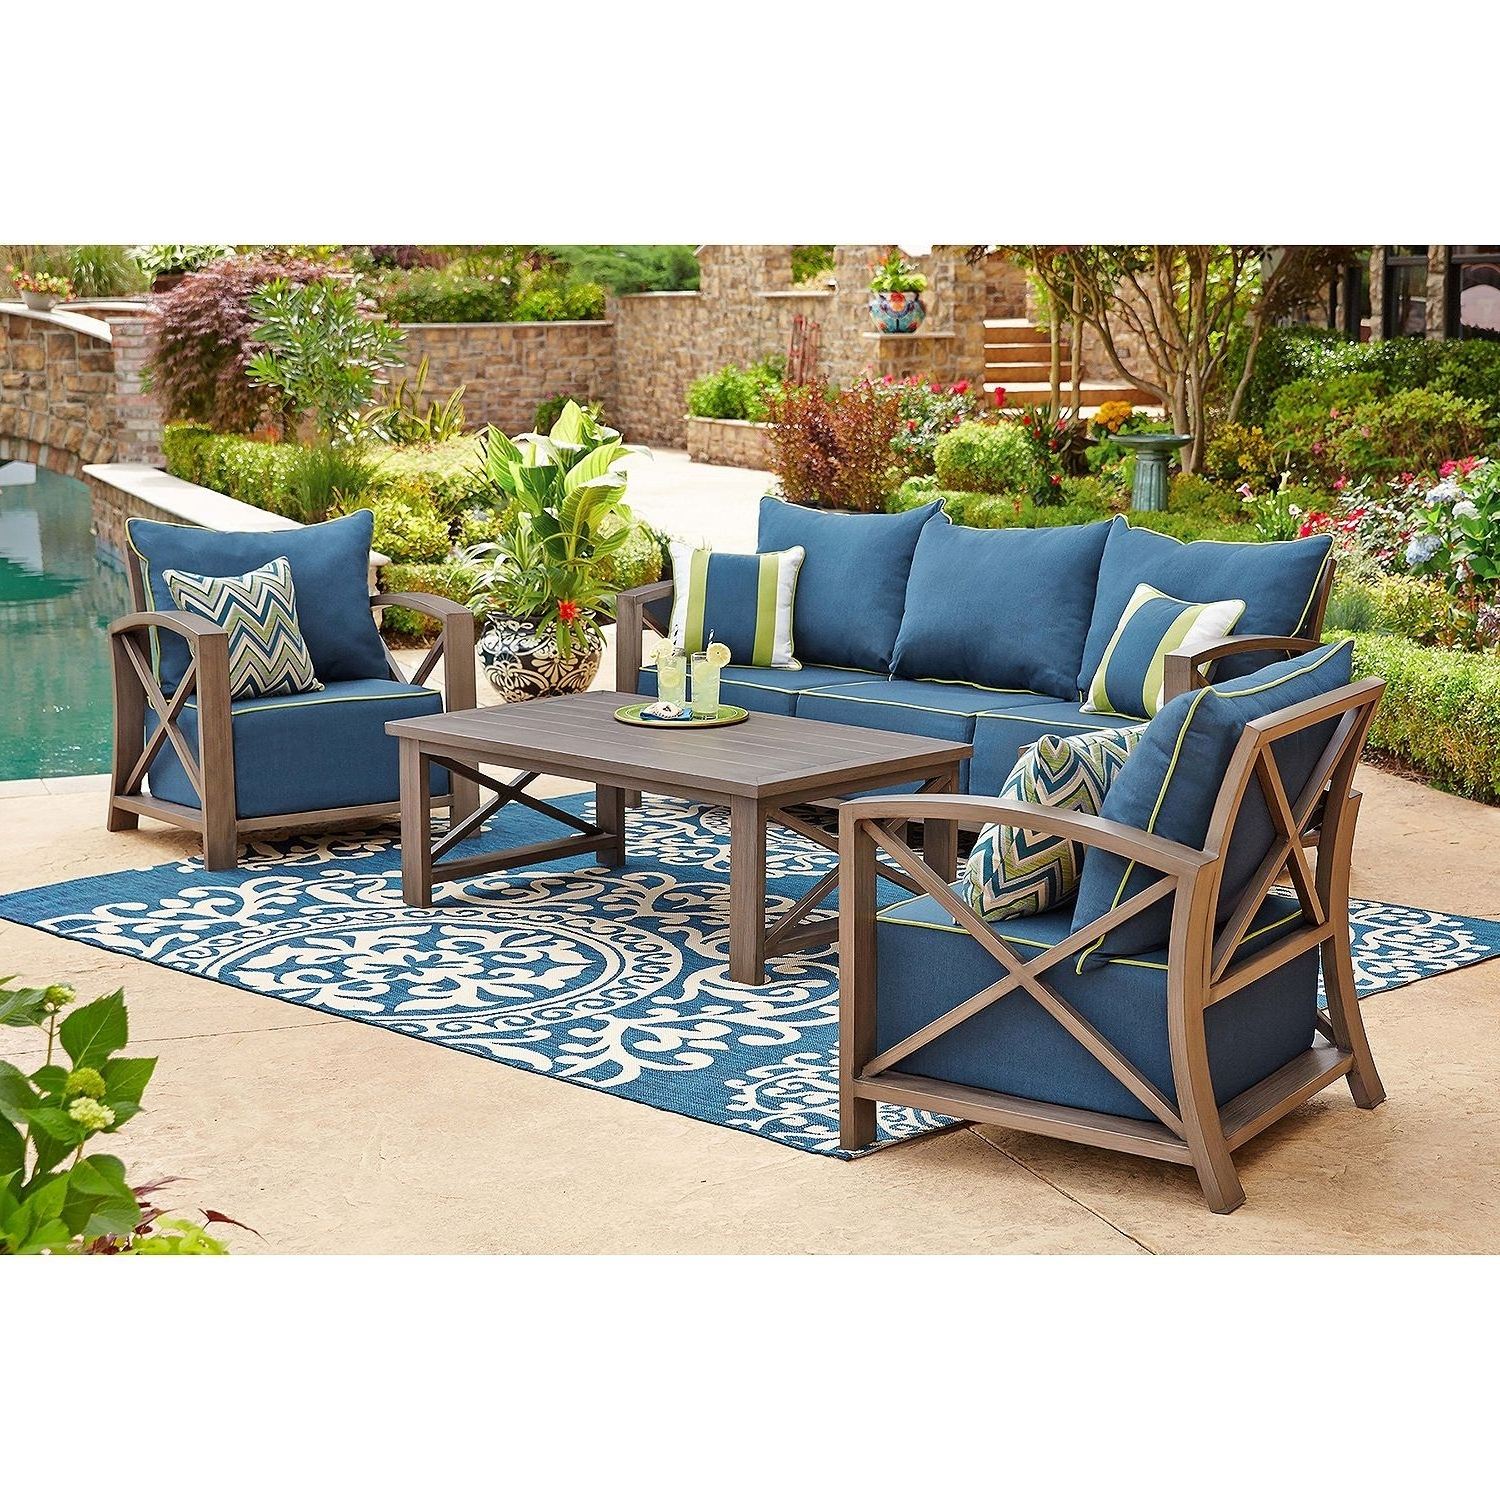 Widely Used Practical Sam S Club Outdoor Patio Furniture Appealing Replacement For Patio Conversation Sets At Sam's Club (View 20 of 20)